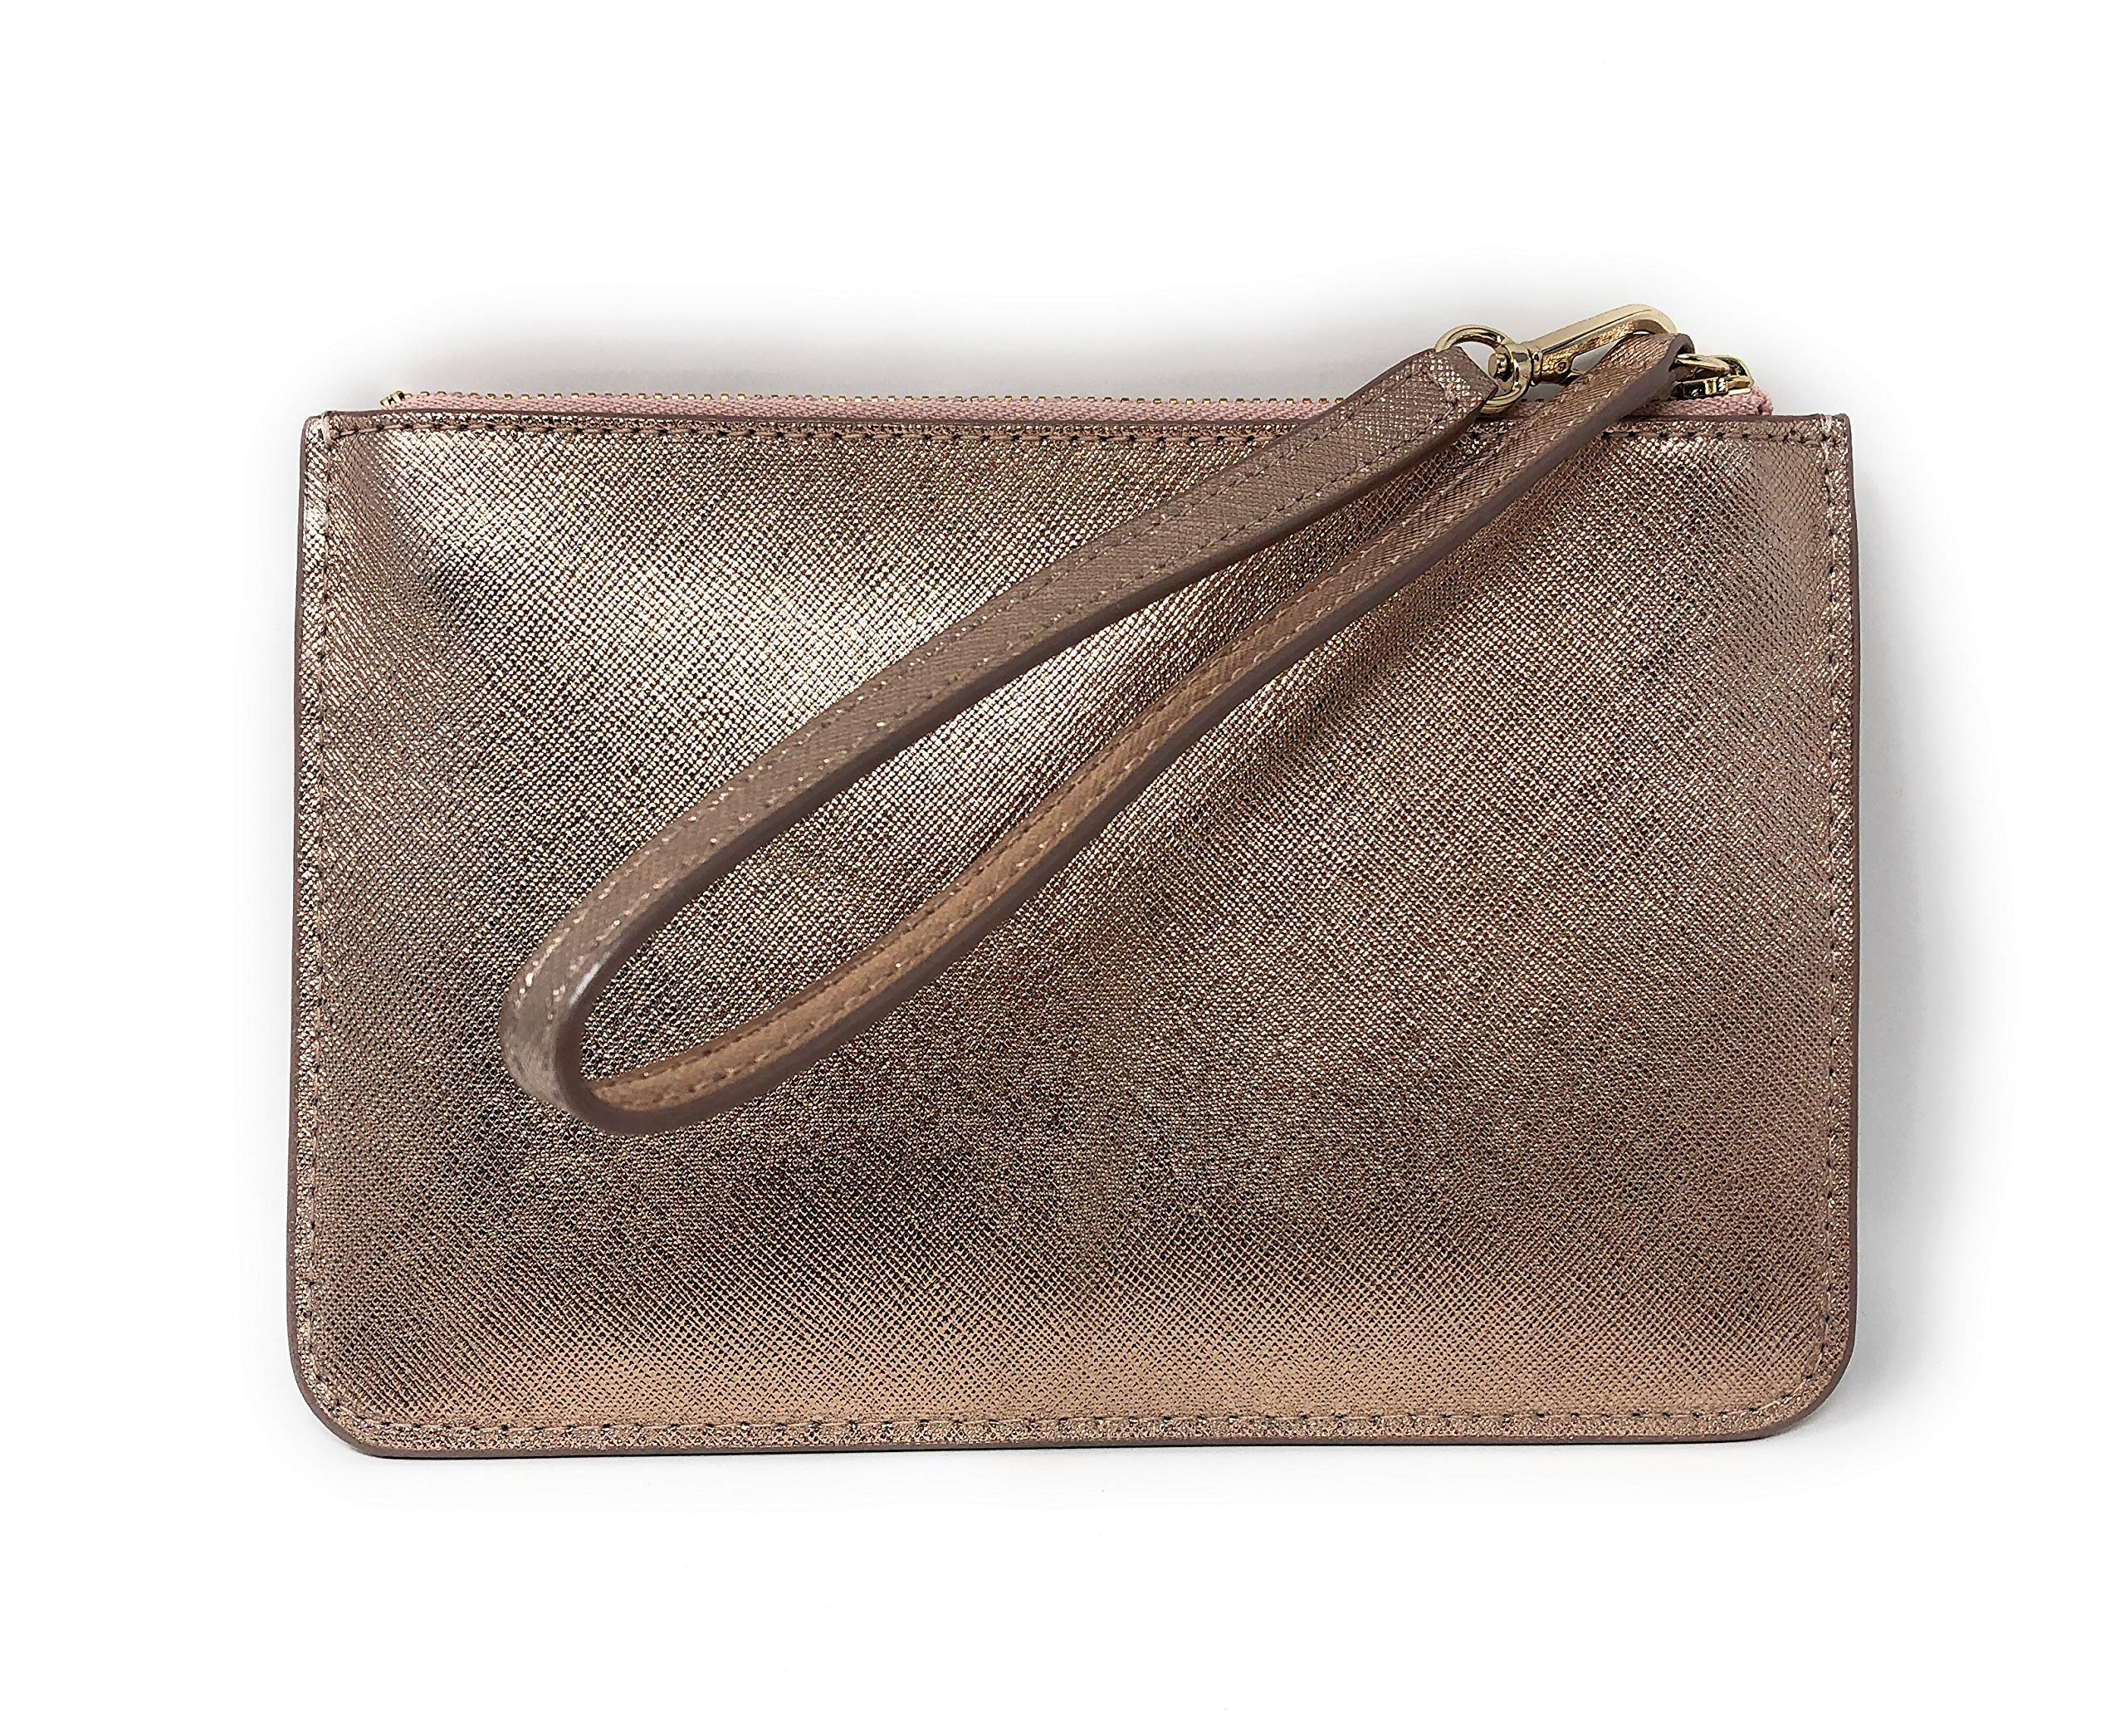 Kate Spade New York Laurel Way Tinie Leather Wristlet in Rose Gold by Kate Spade New York (Image #2)